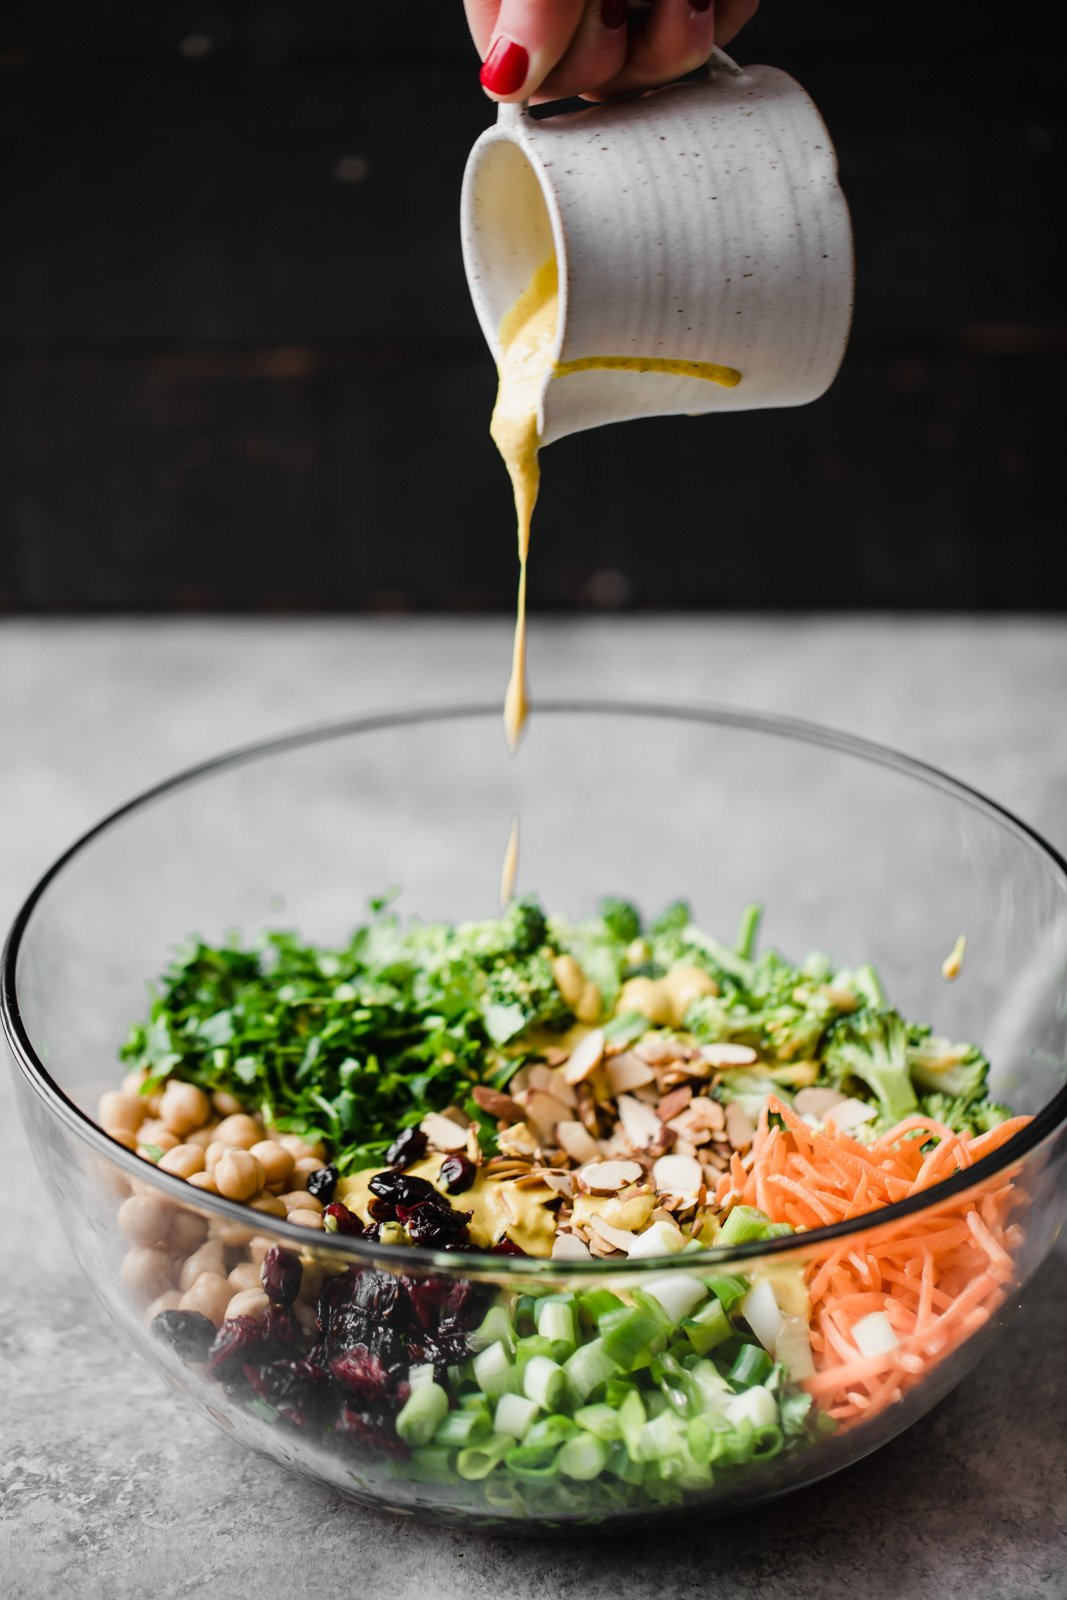 tahini dressing pouring into glass bowl with broccoli chickpea salad